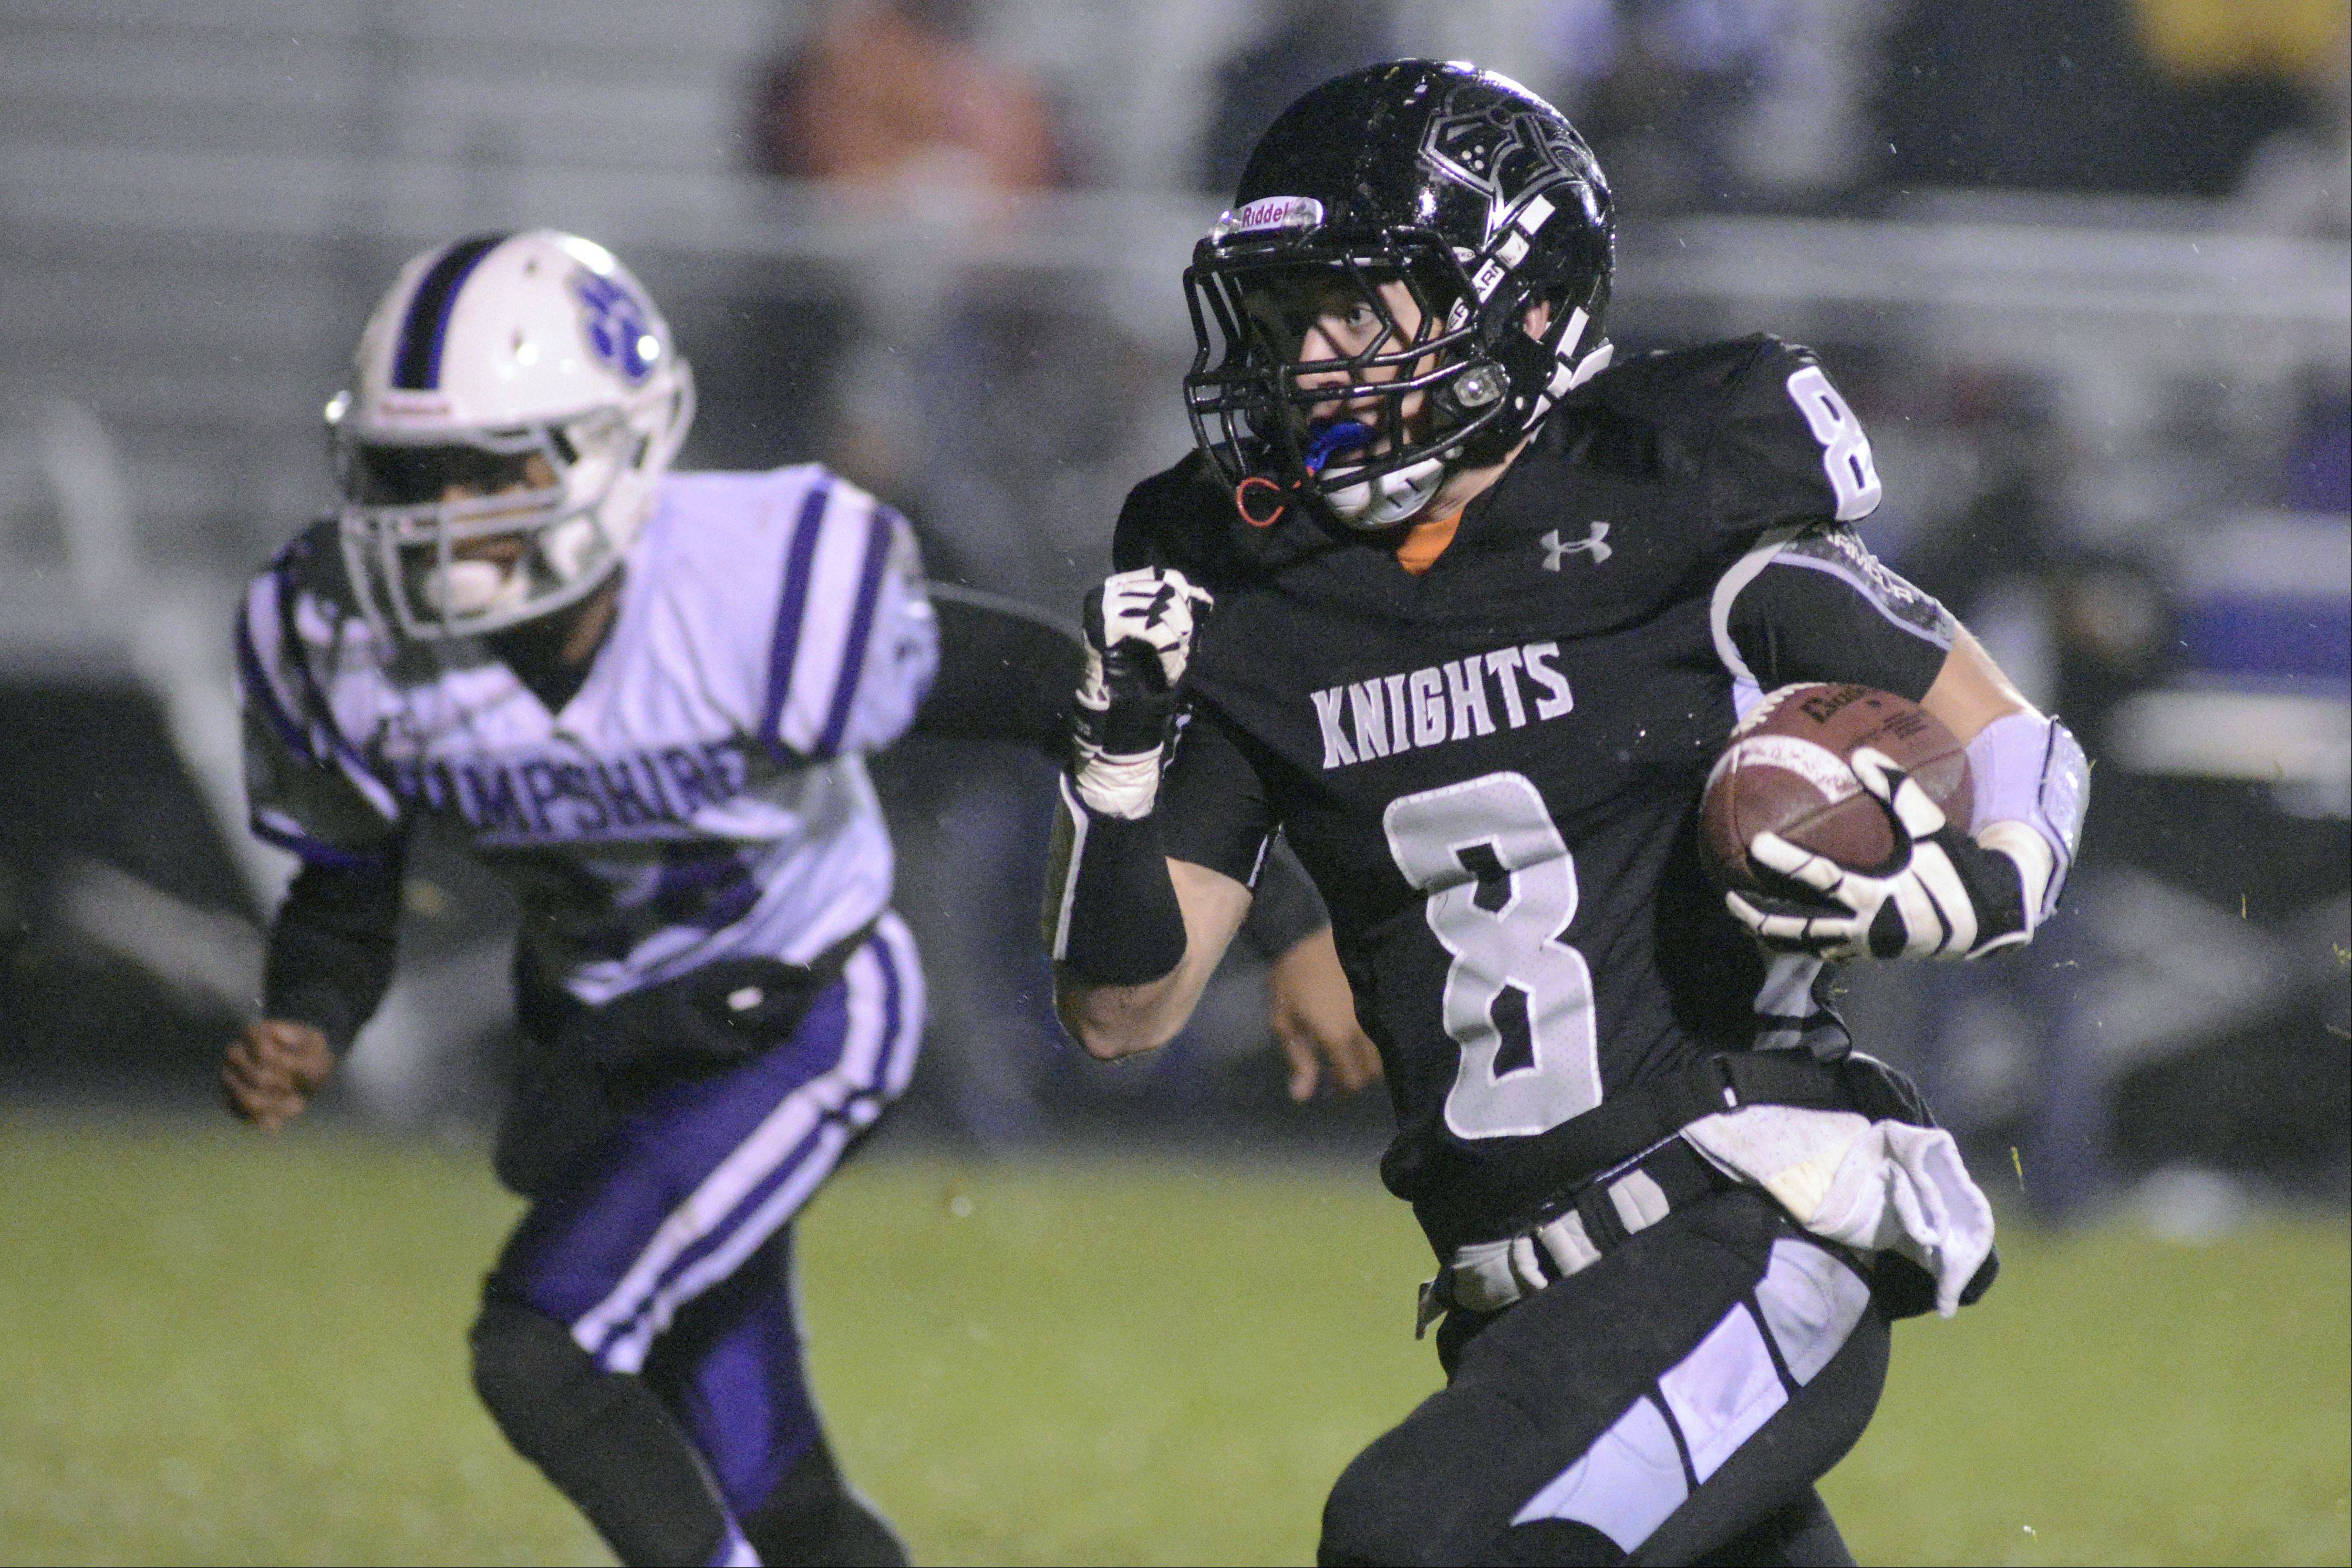 Kaneland's Brandon Bishop makes his way to the end zone in the second quarter on Friday, November 1. His touchdown was recalled, but the Knights completed the touchdown a few minutes later.